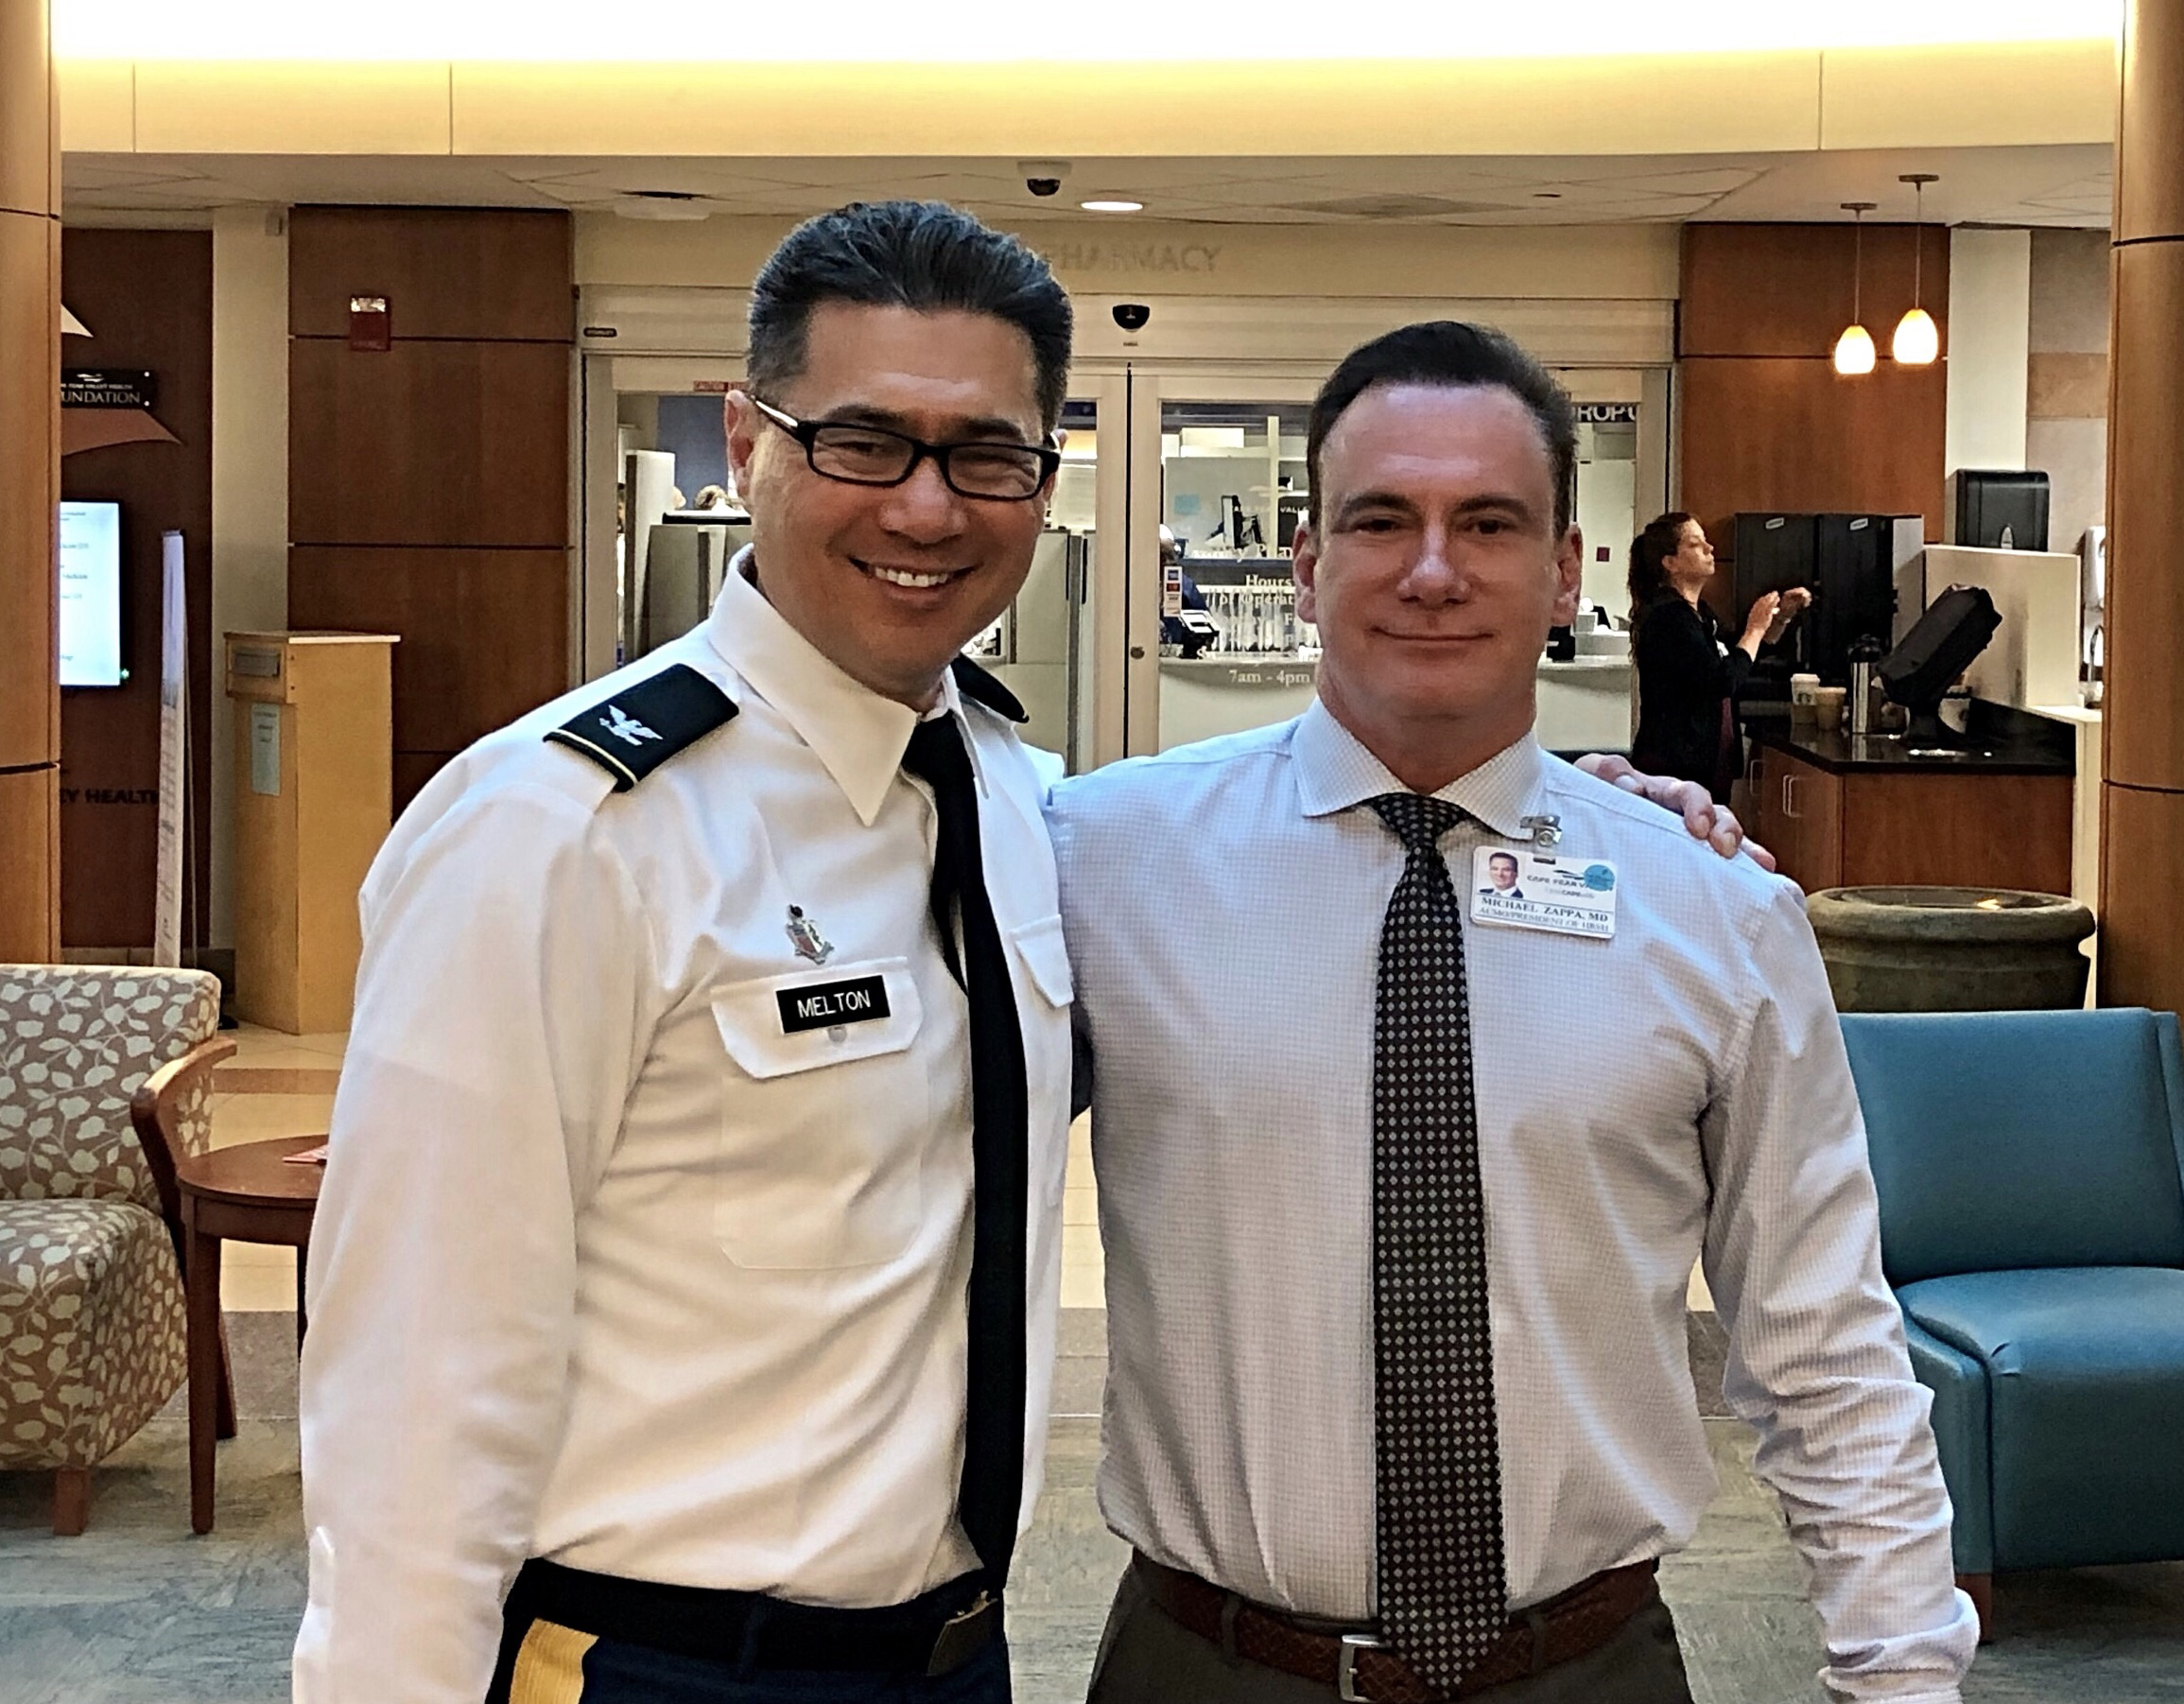 COL John Melton, Commander Womack Army Medical Center (WAMC), Fort Bragg, NC with Dr. Michael Zappa at Cape Fear Valley (CFV) Medical Center